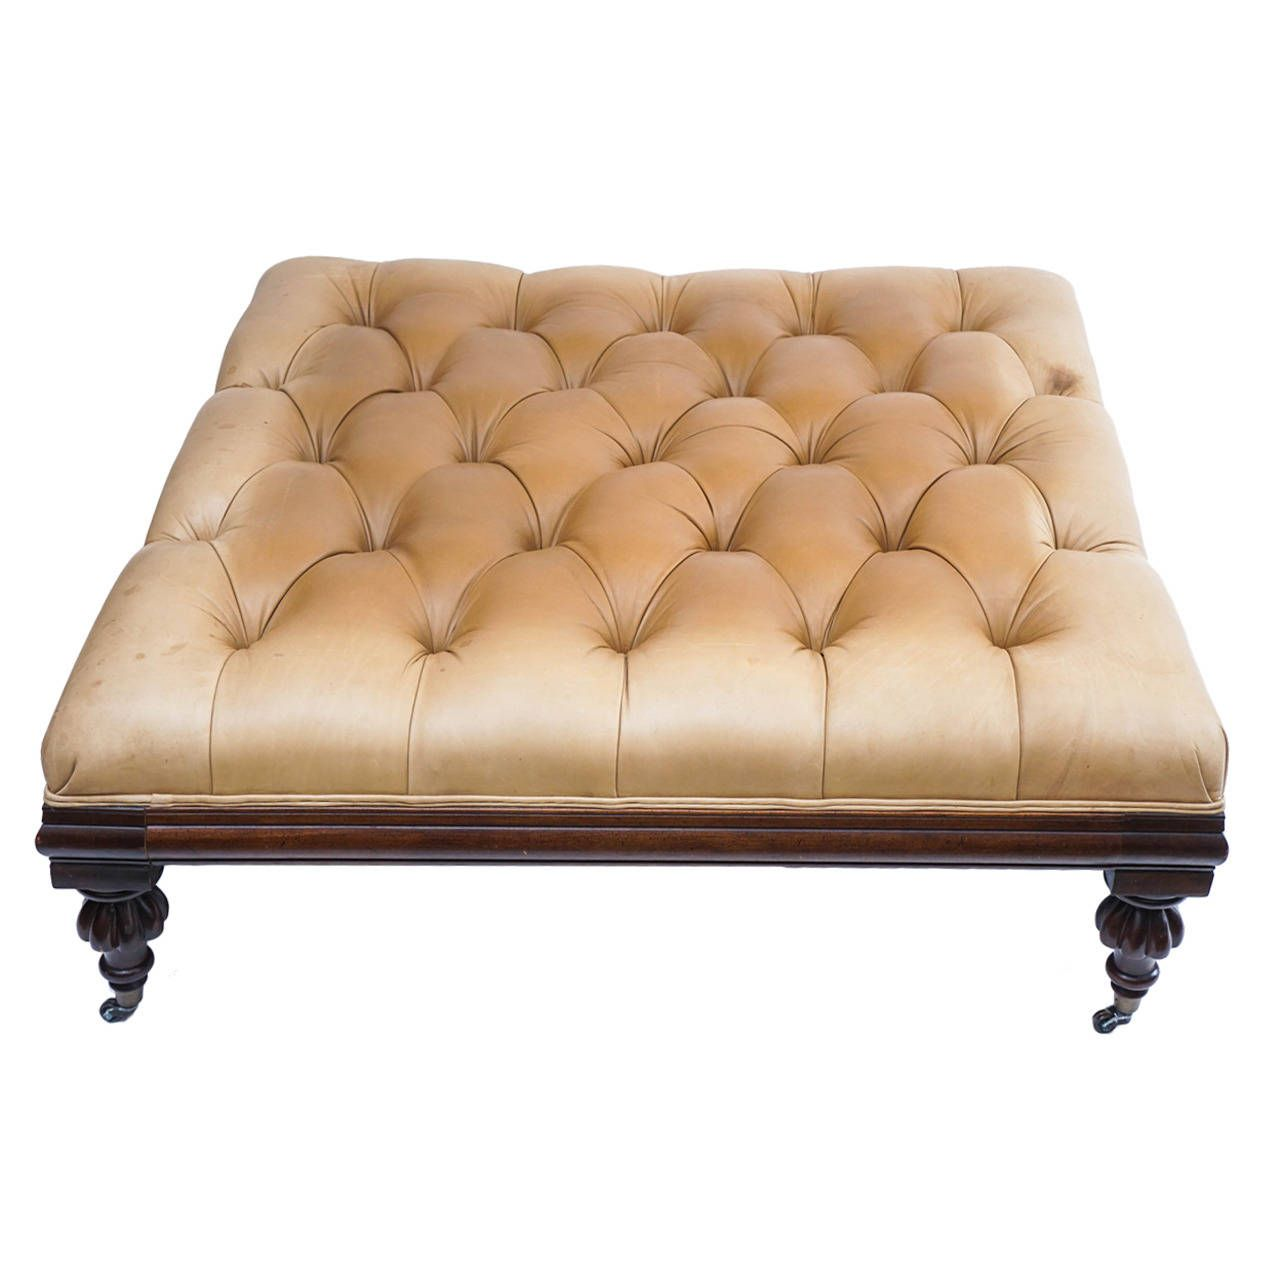 Large Henredon Leather Ottoman Or Coffee Table With Traditional Casters